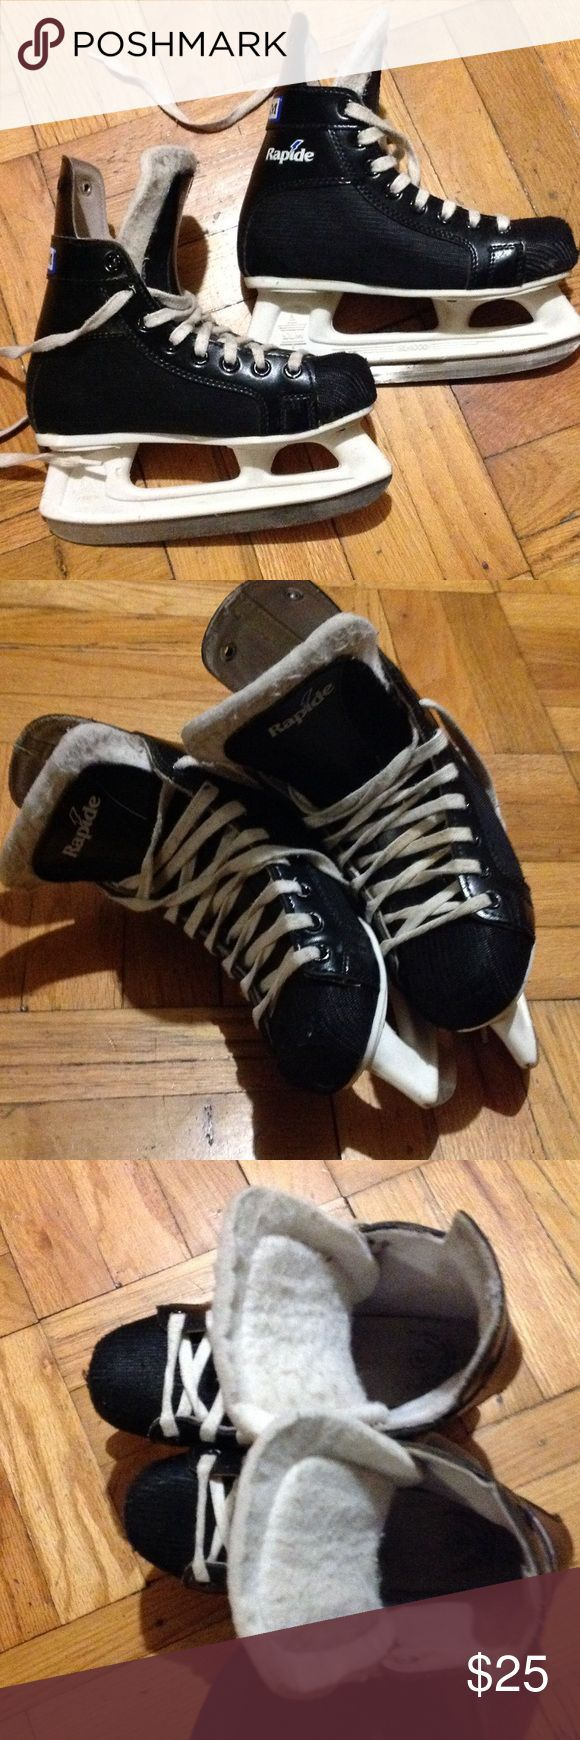 best 25 ccm hockey ideas on pinterest ccm hockey skates easton